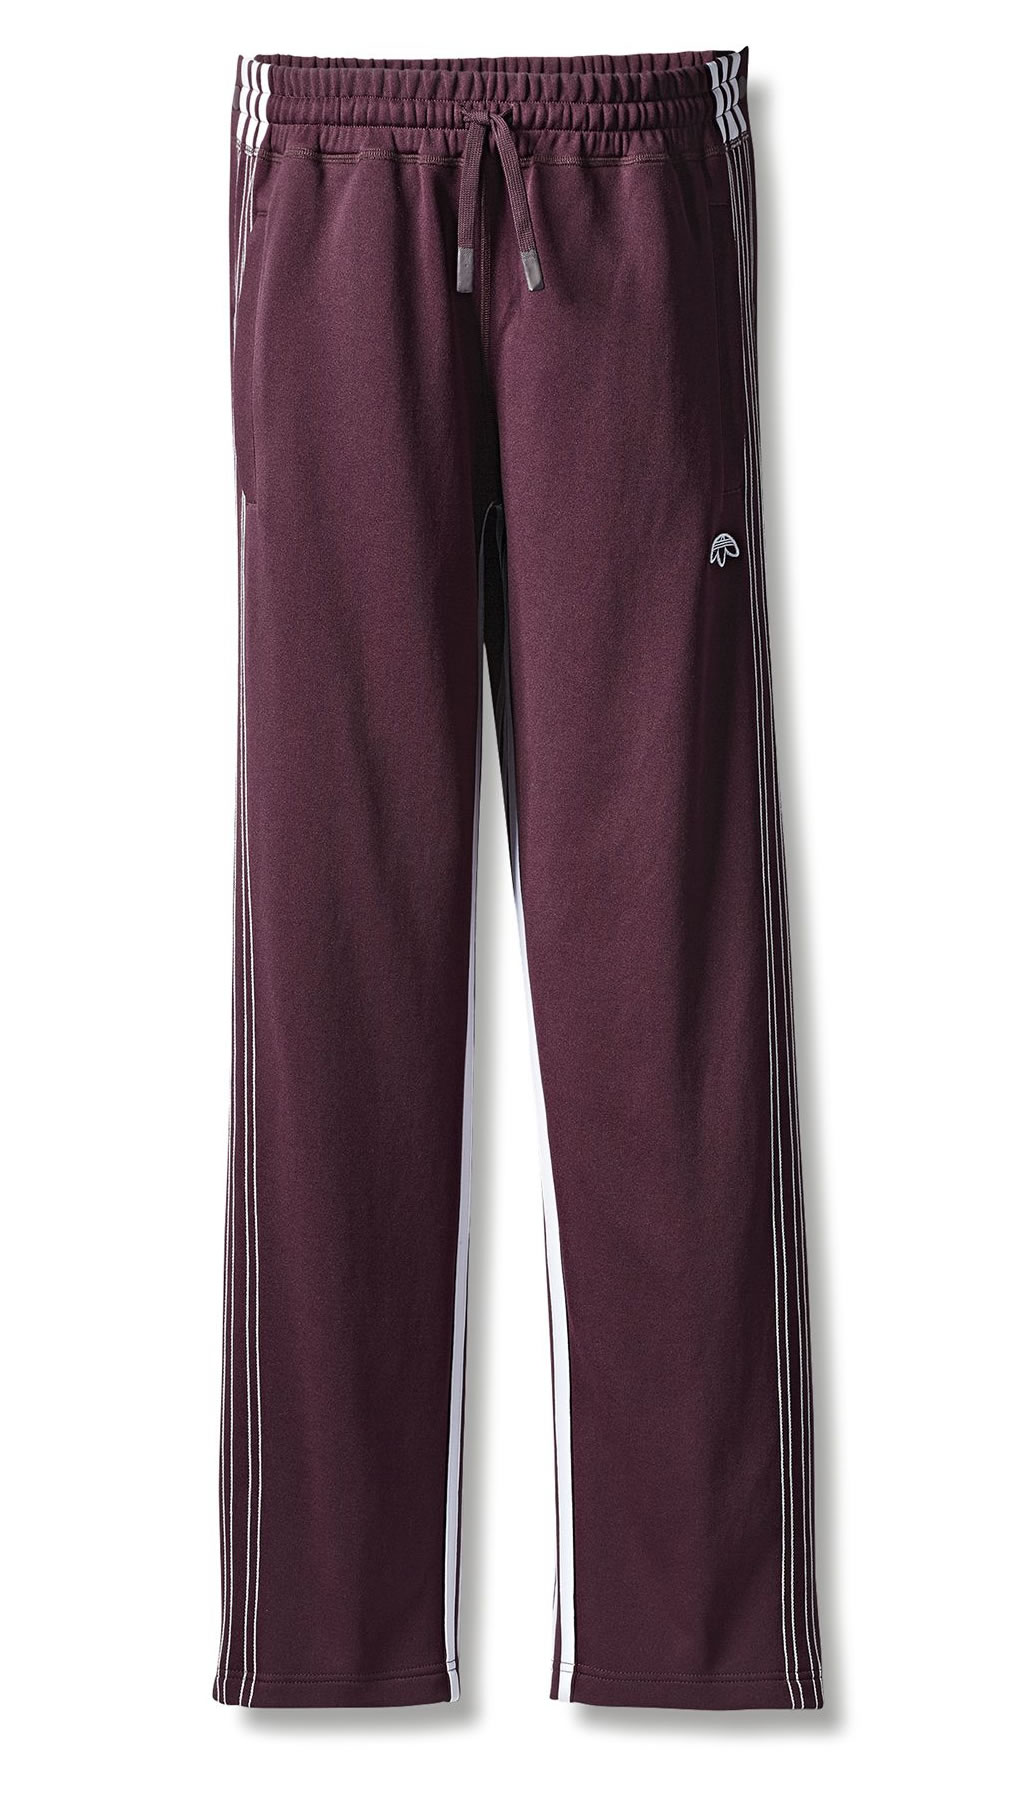 Adidas Originals by Alexander Wang Track Pants, Waistband